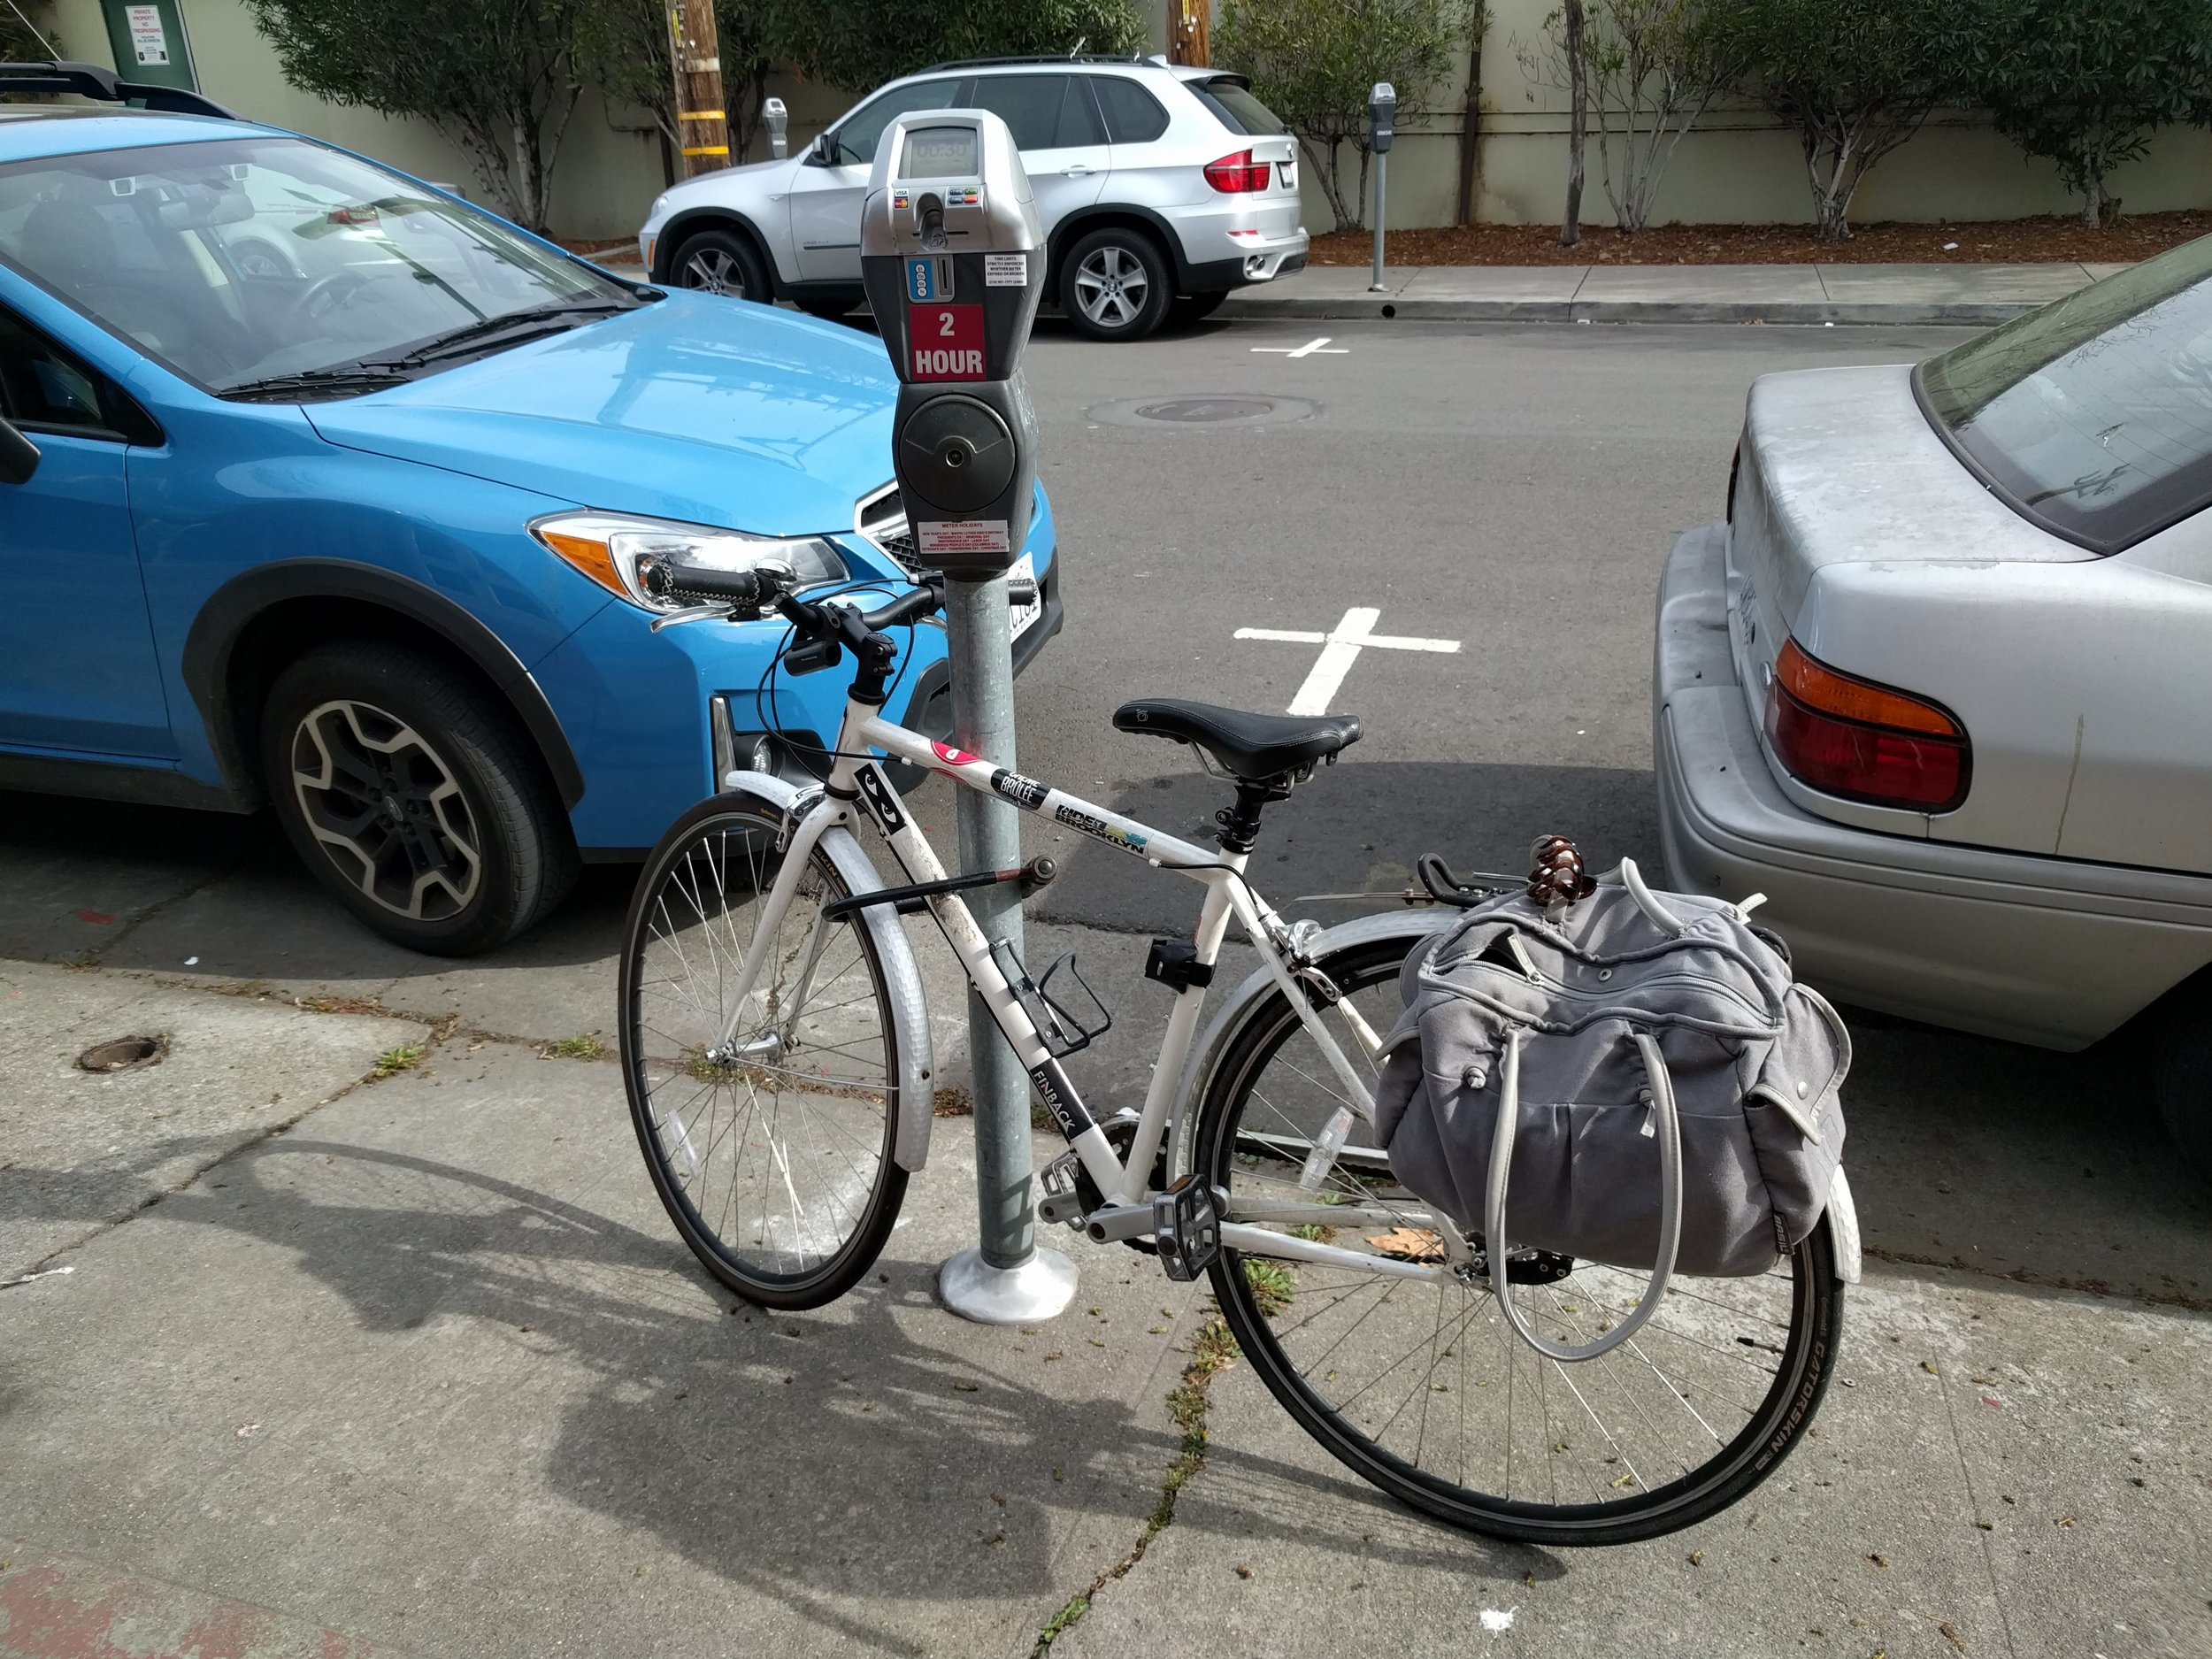 Yet another cool thing about biking: you can almost always get a free parking spot directly in front with no time limit ;).  Pictured here, my loyal 3-speed Swobo hybrid bike that I find ideal for urban riding.